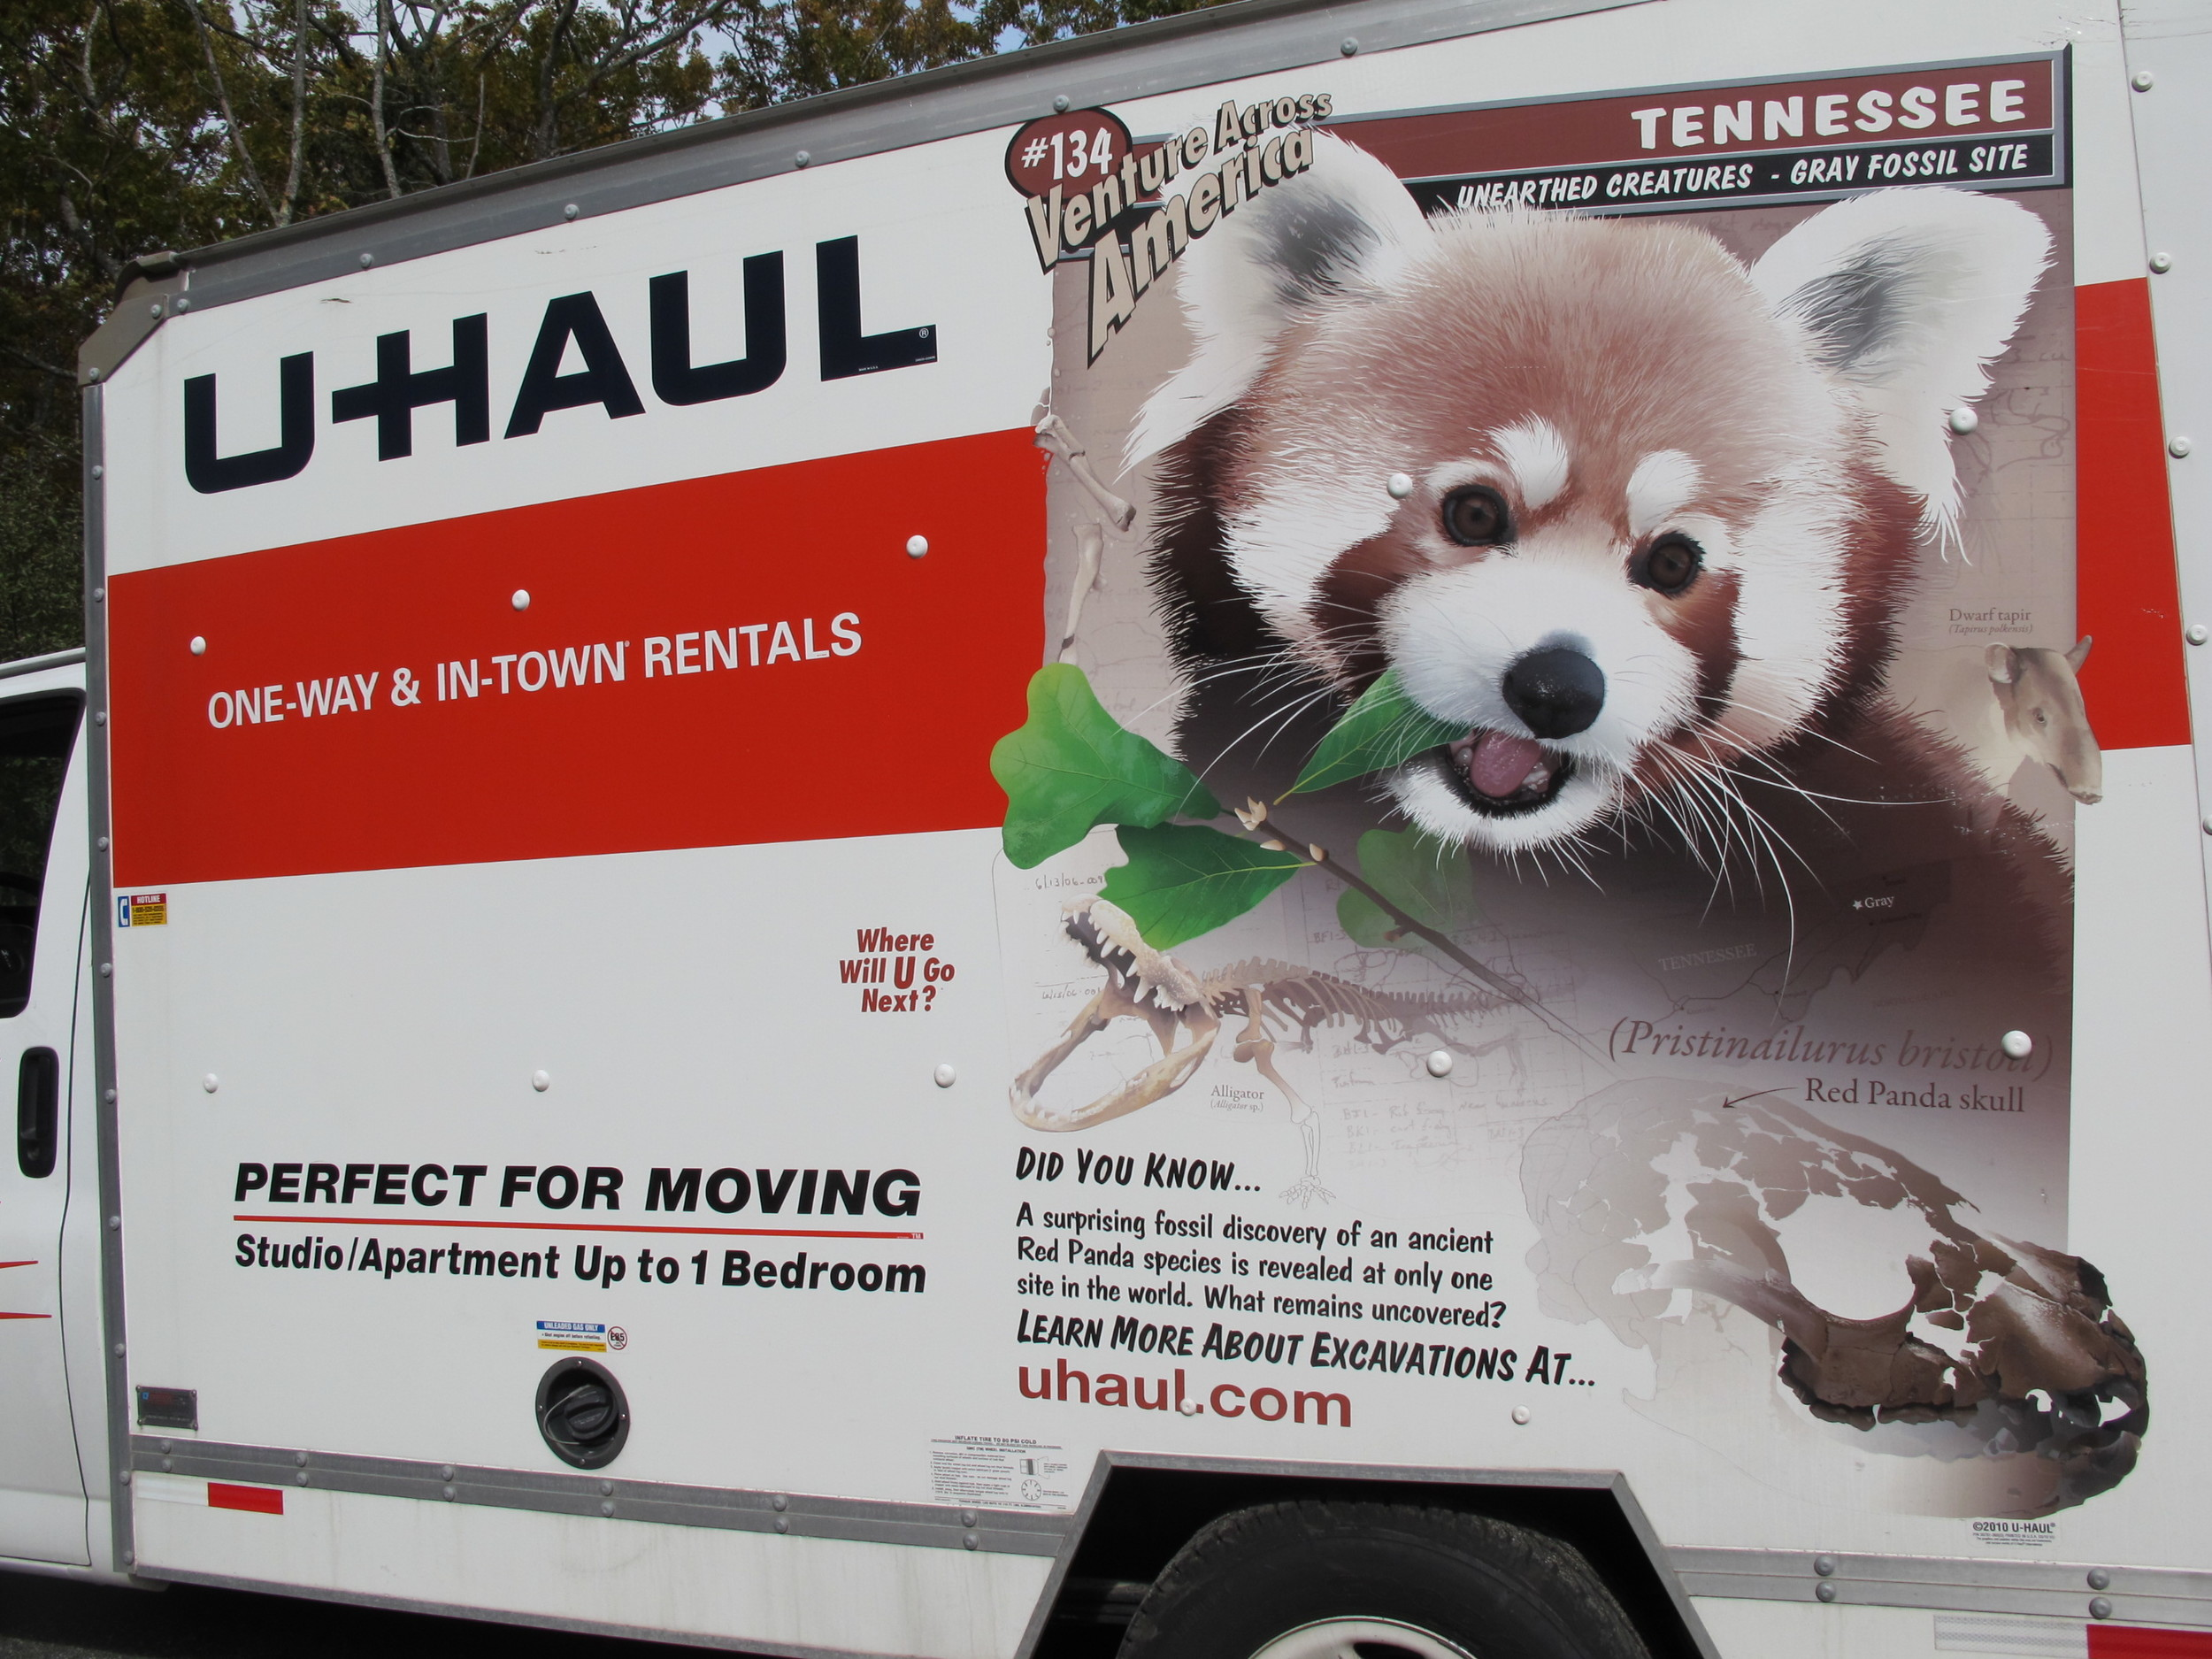 The Red Panda-mobile not only held all the parts and pieces of our history-of-the-universe installation, but also bore a Naturalist's Notebook-worthy message about animals and natural history.